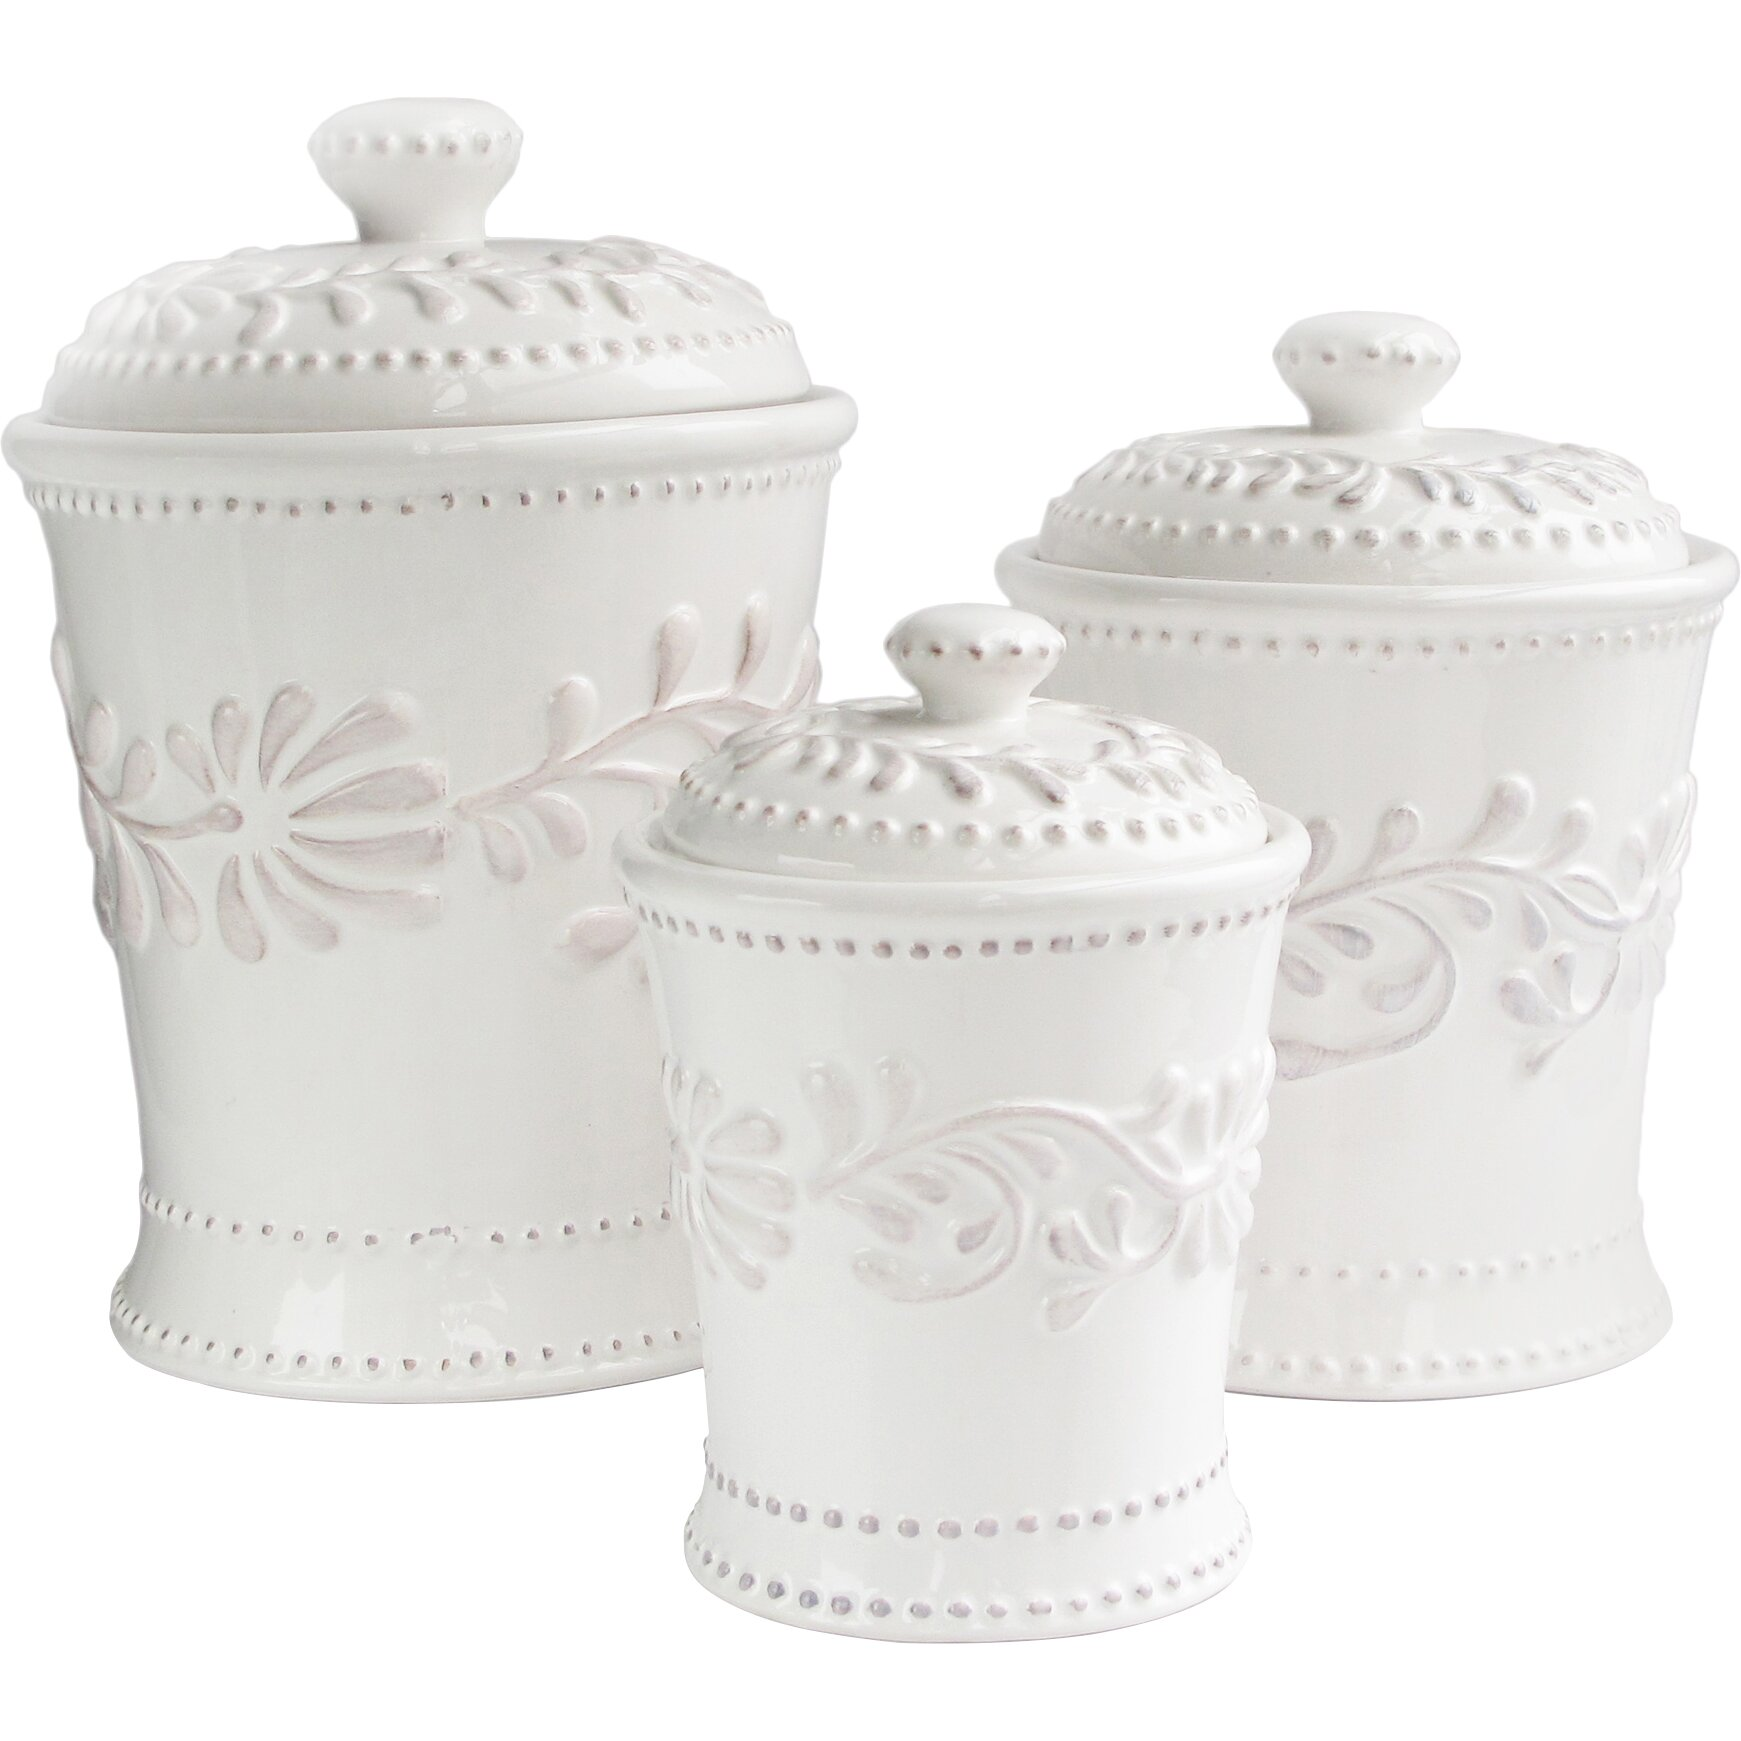 Designer Kitchen Canister Sets Kitchen Canisters Jars Youll Love Wayfair